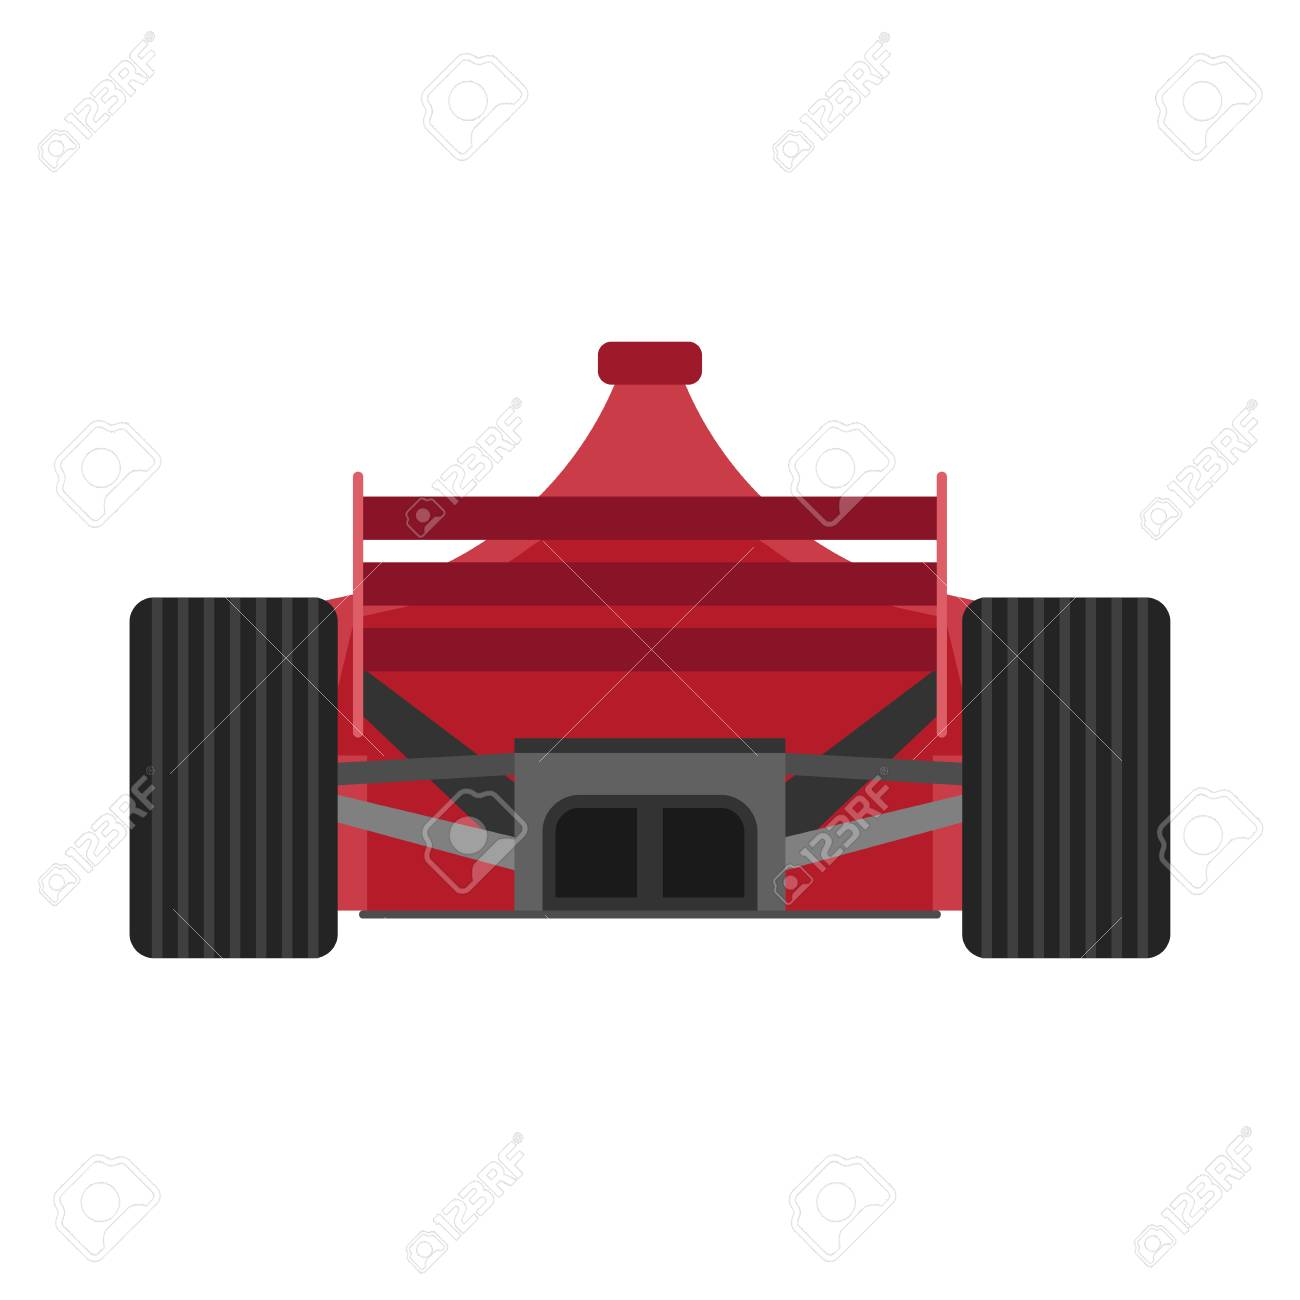 Formula 1 Red Racing Car Back View Vector Icon Championship Royalty Free Cliparts Vectors And Stock Illustration Image 121849918